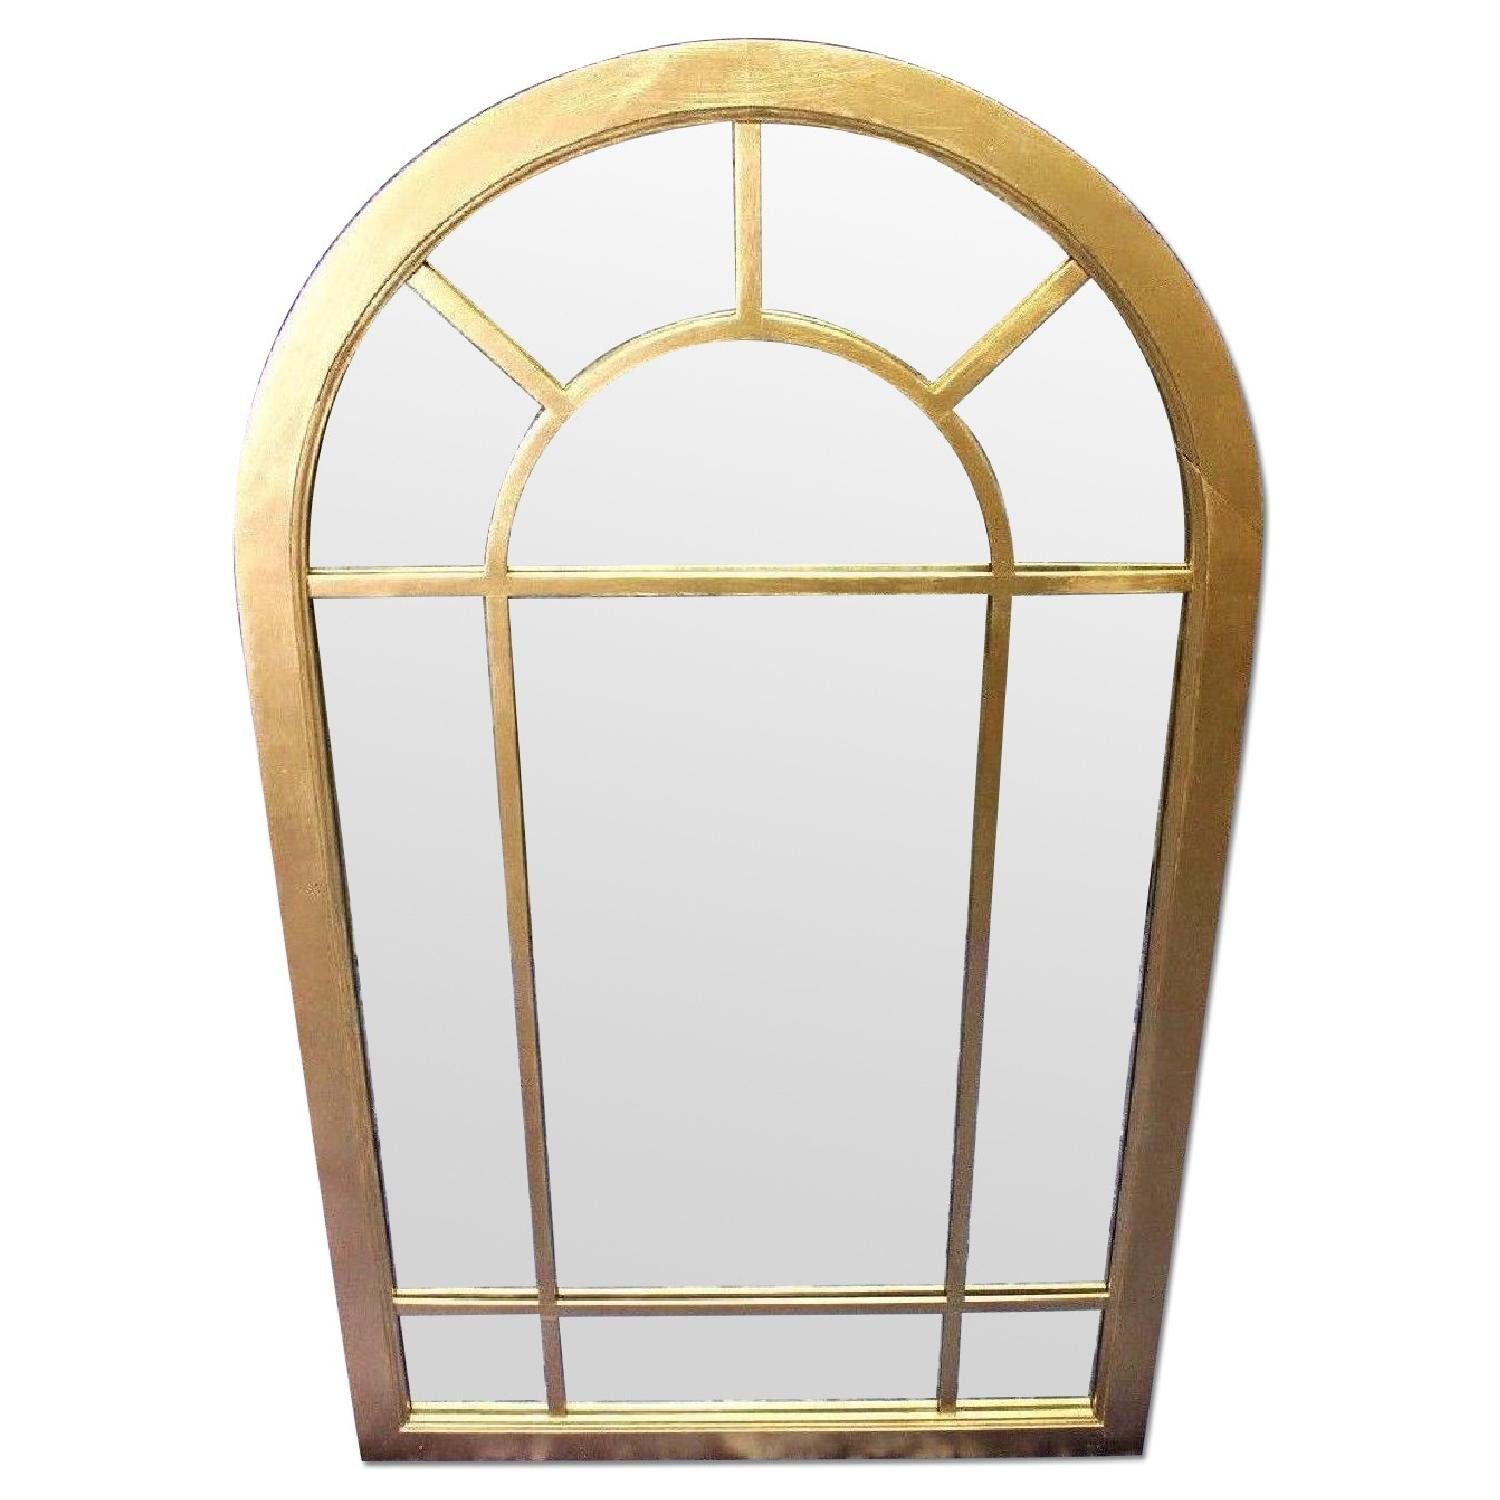 Art Deco Arched Heavy Wood Frame Wall Mirror